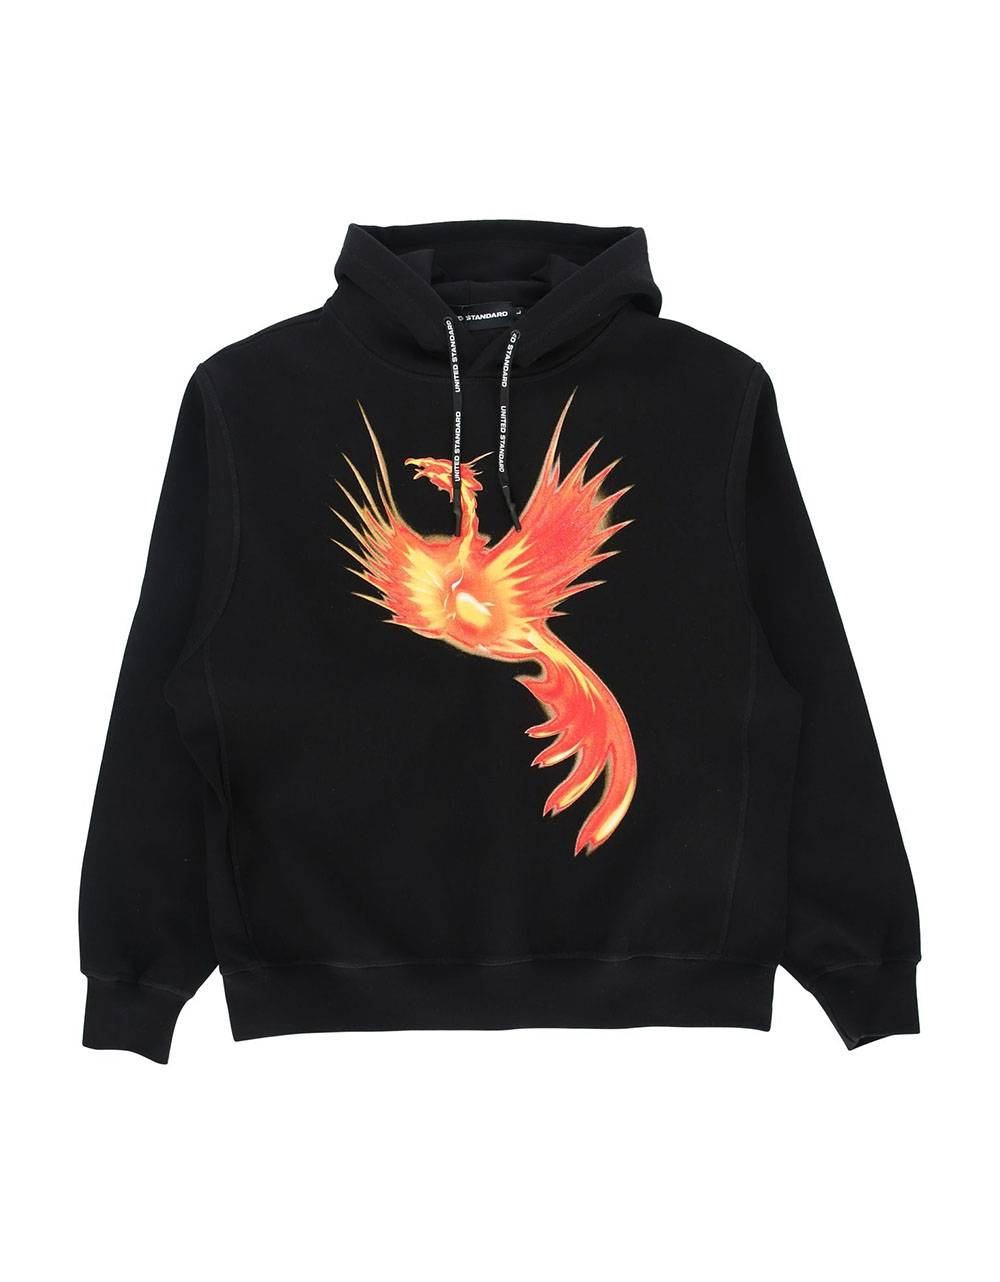 United Standard Phoenix hoodie - black United Standard Sweater 163,11 €